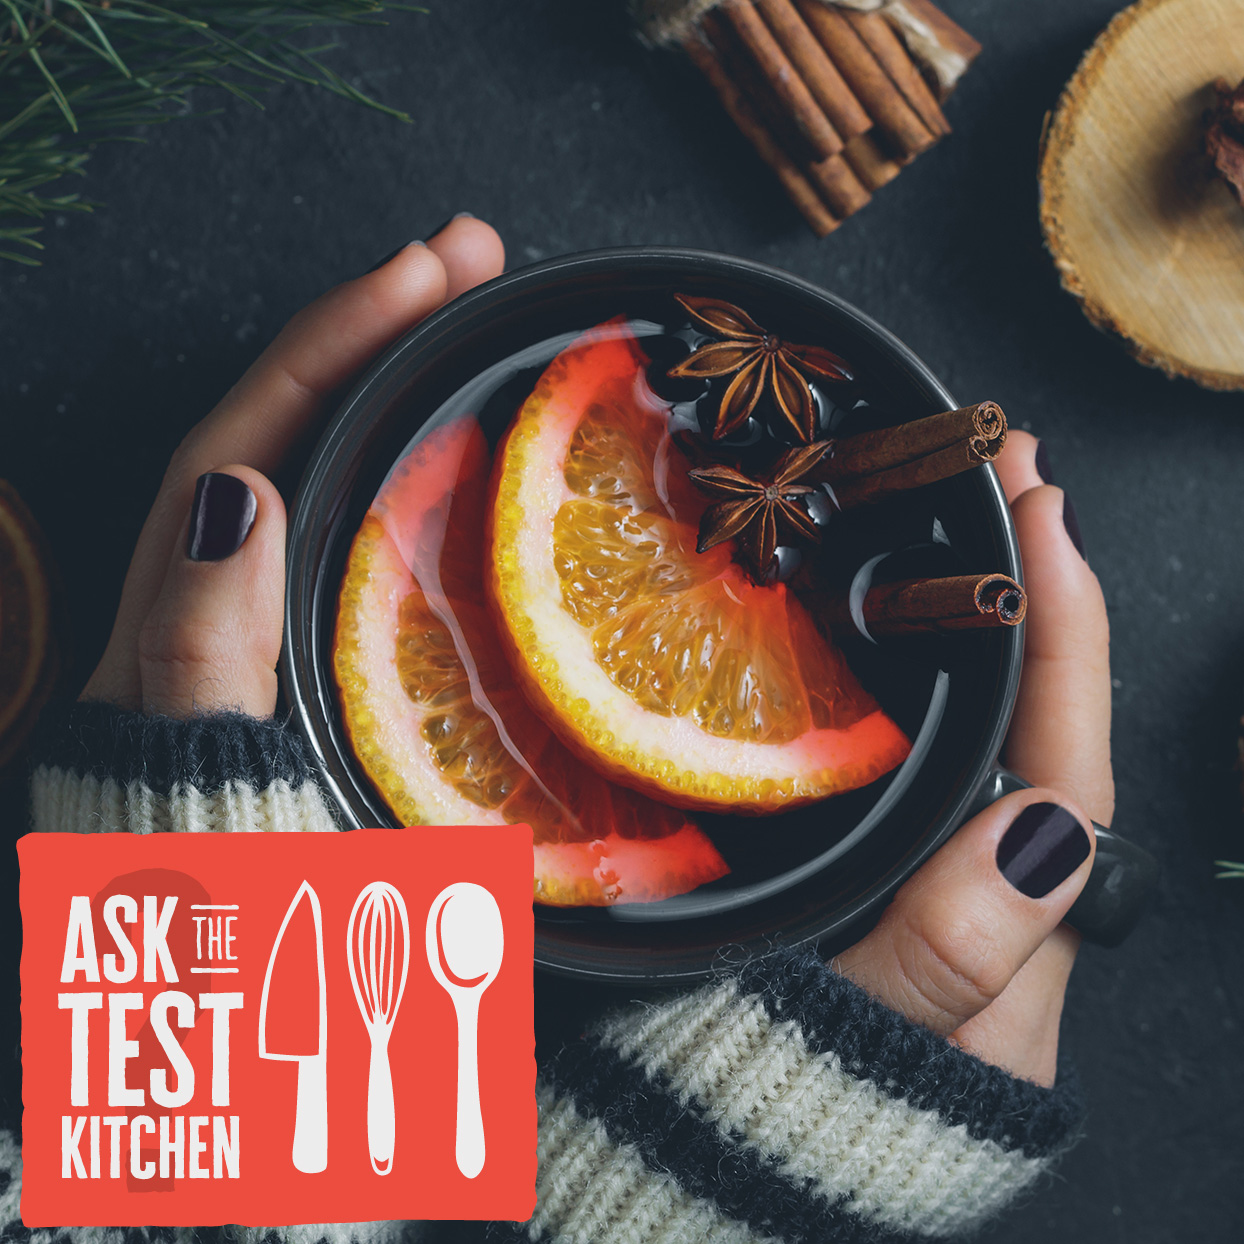 hot drink in hands with dark nail polish and an Ask the Test Kitchen logo